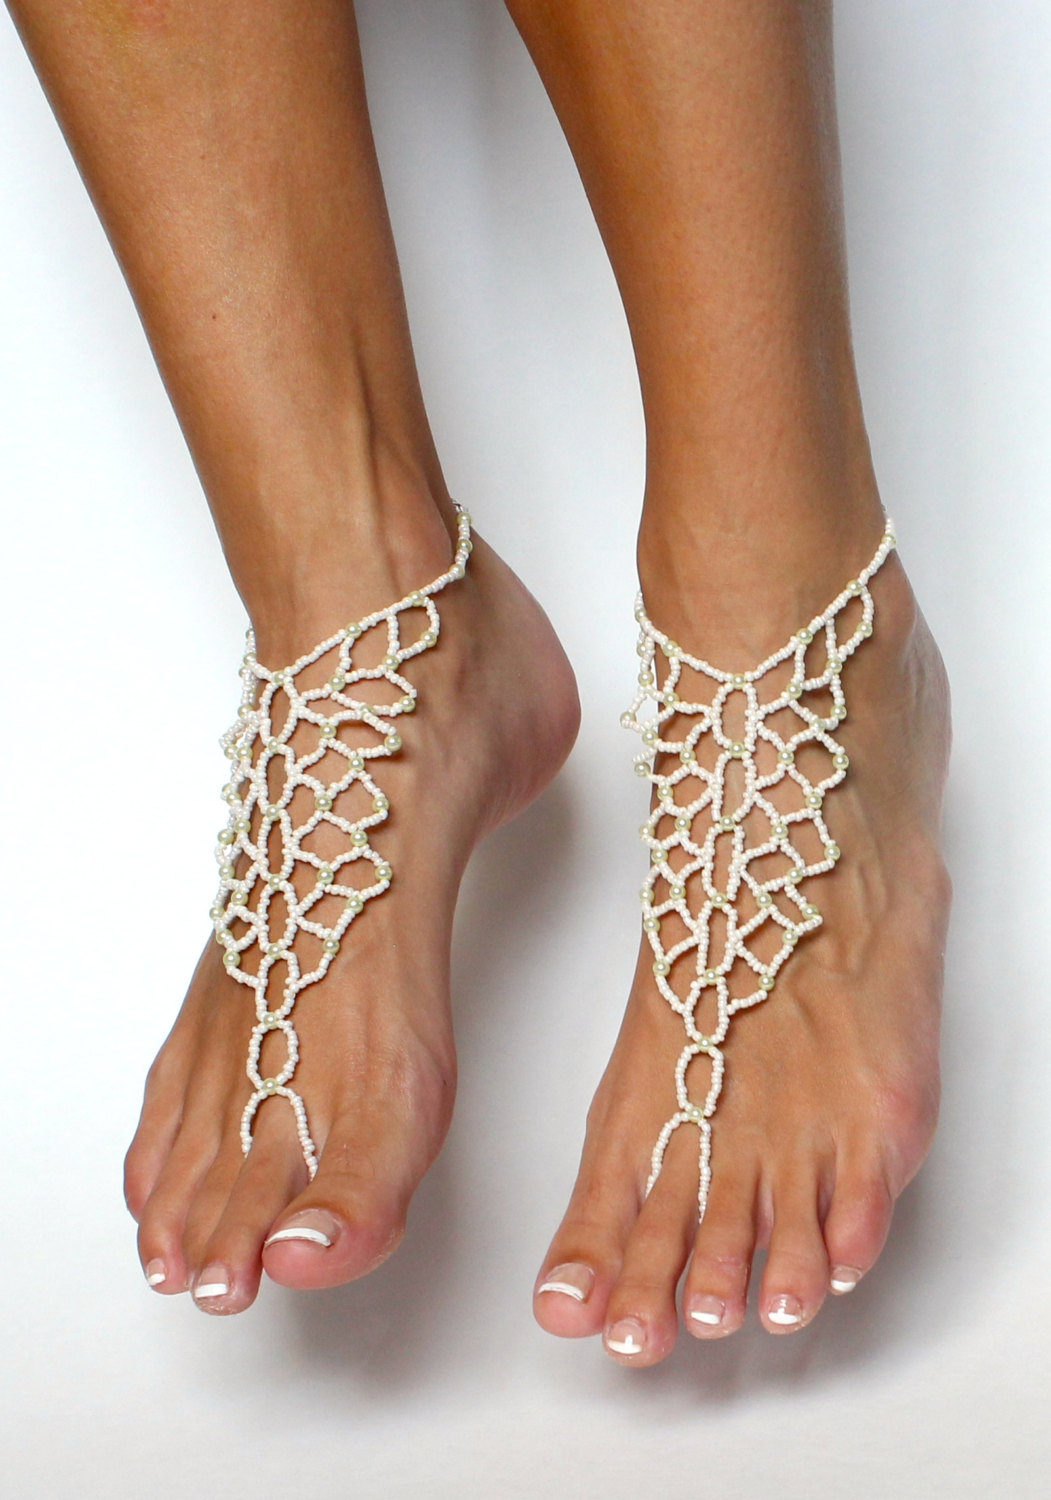 Bridal Jewelry Barefoot Sandals Wedding Foot Jewelry Anklet Barefoot